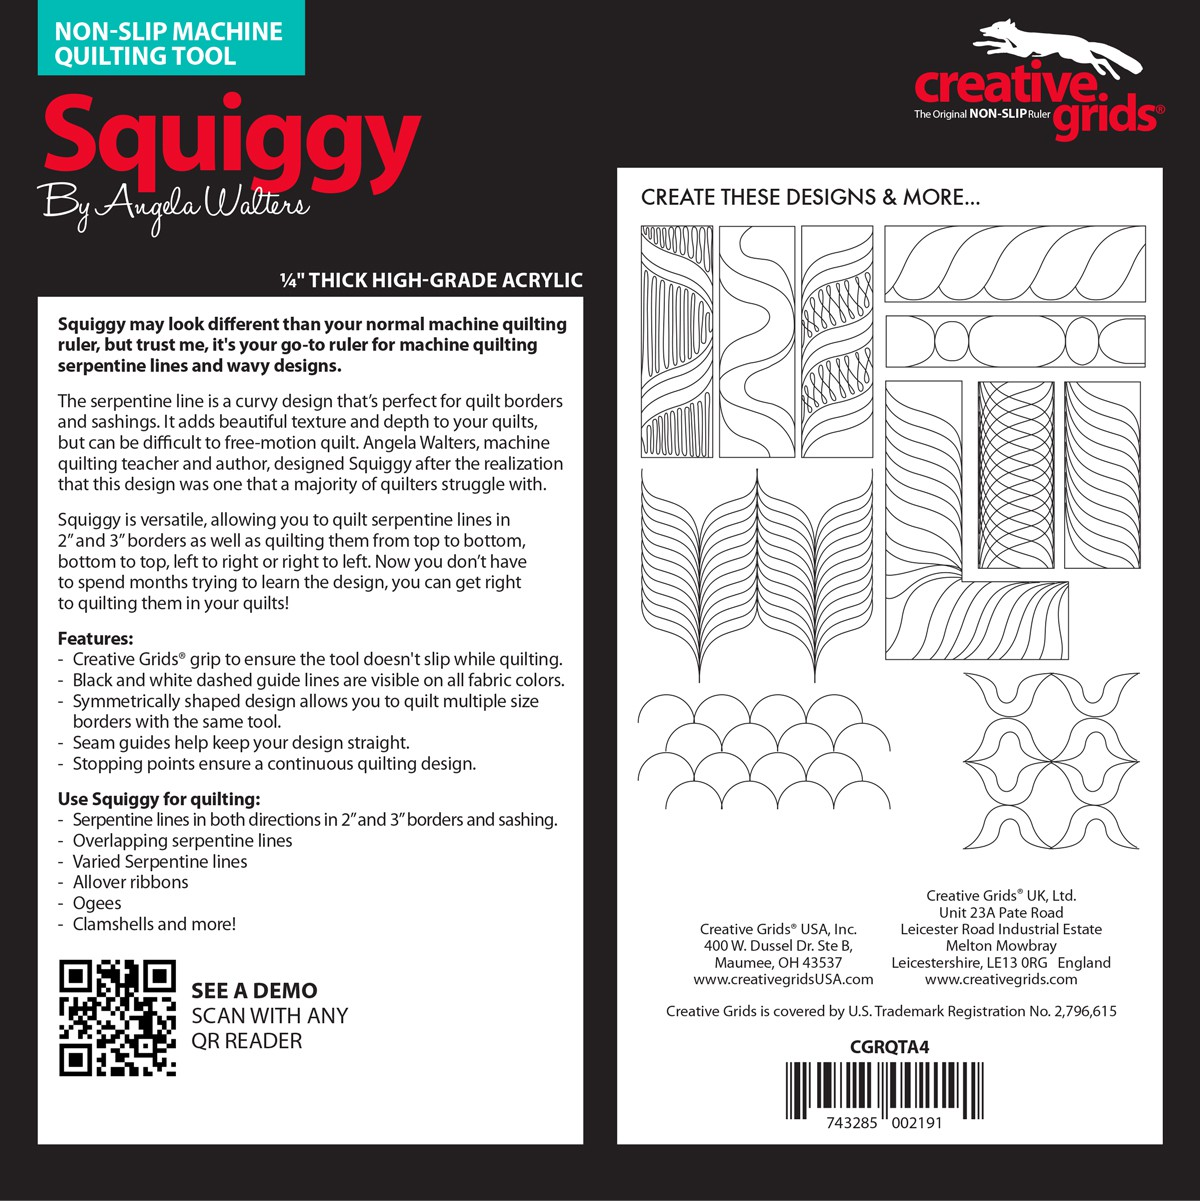 Creative Grids Machine Quilting Tool Squiggy By Walters